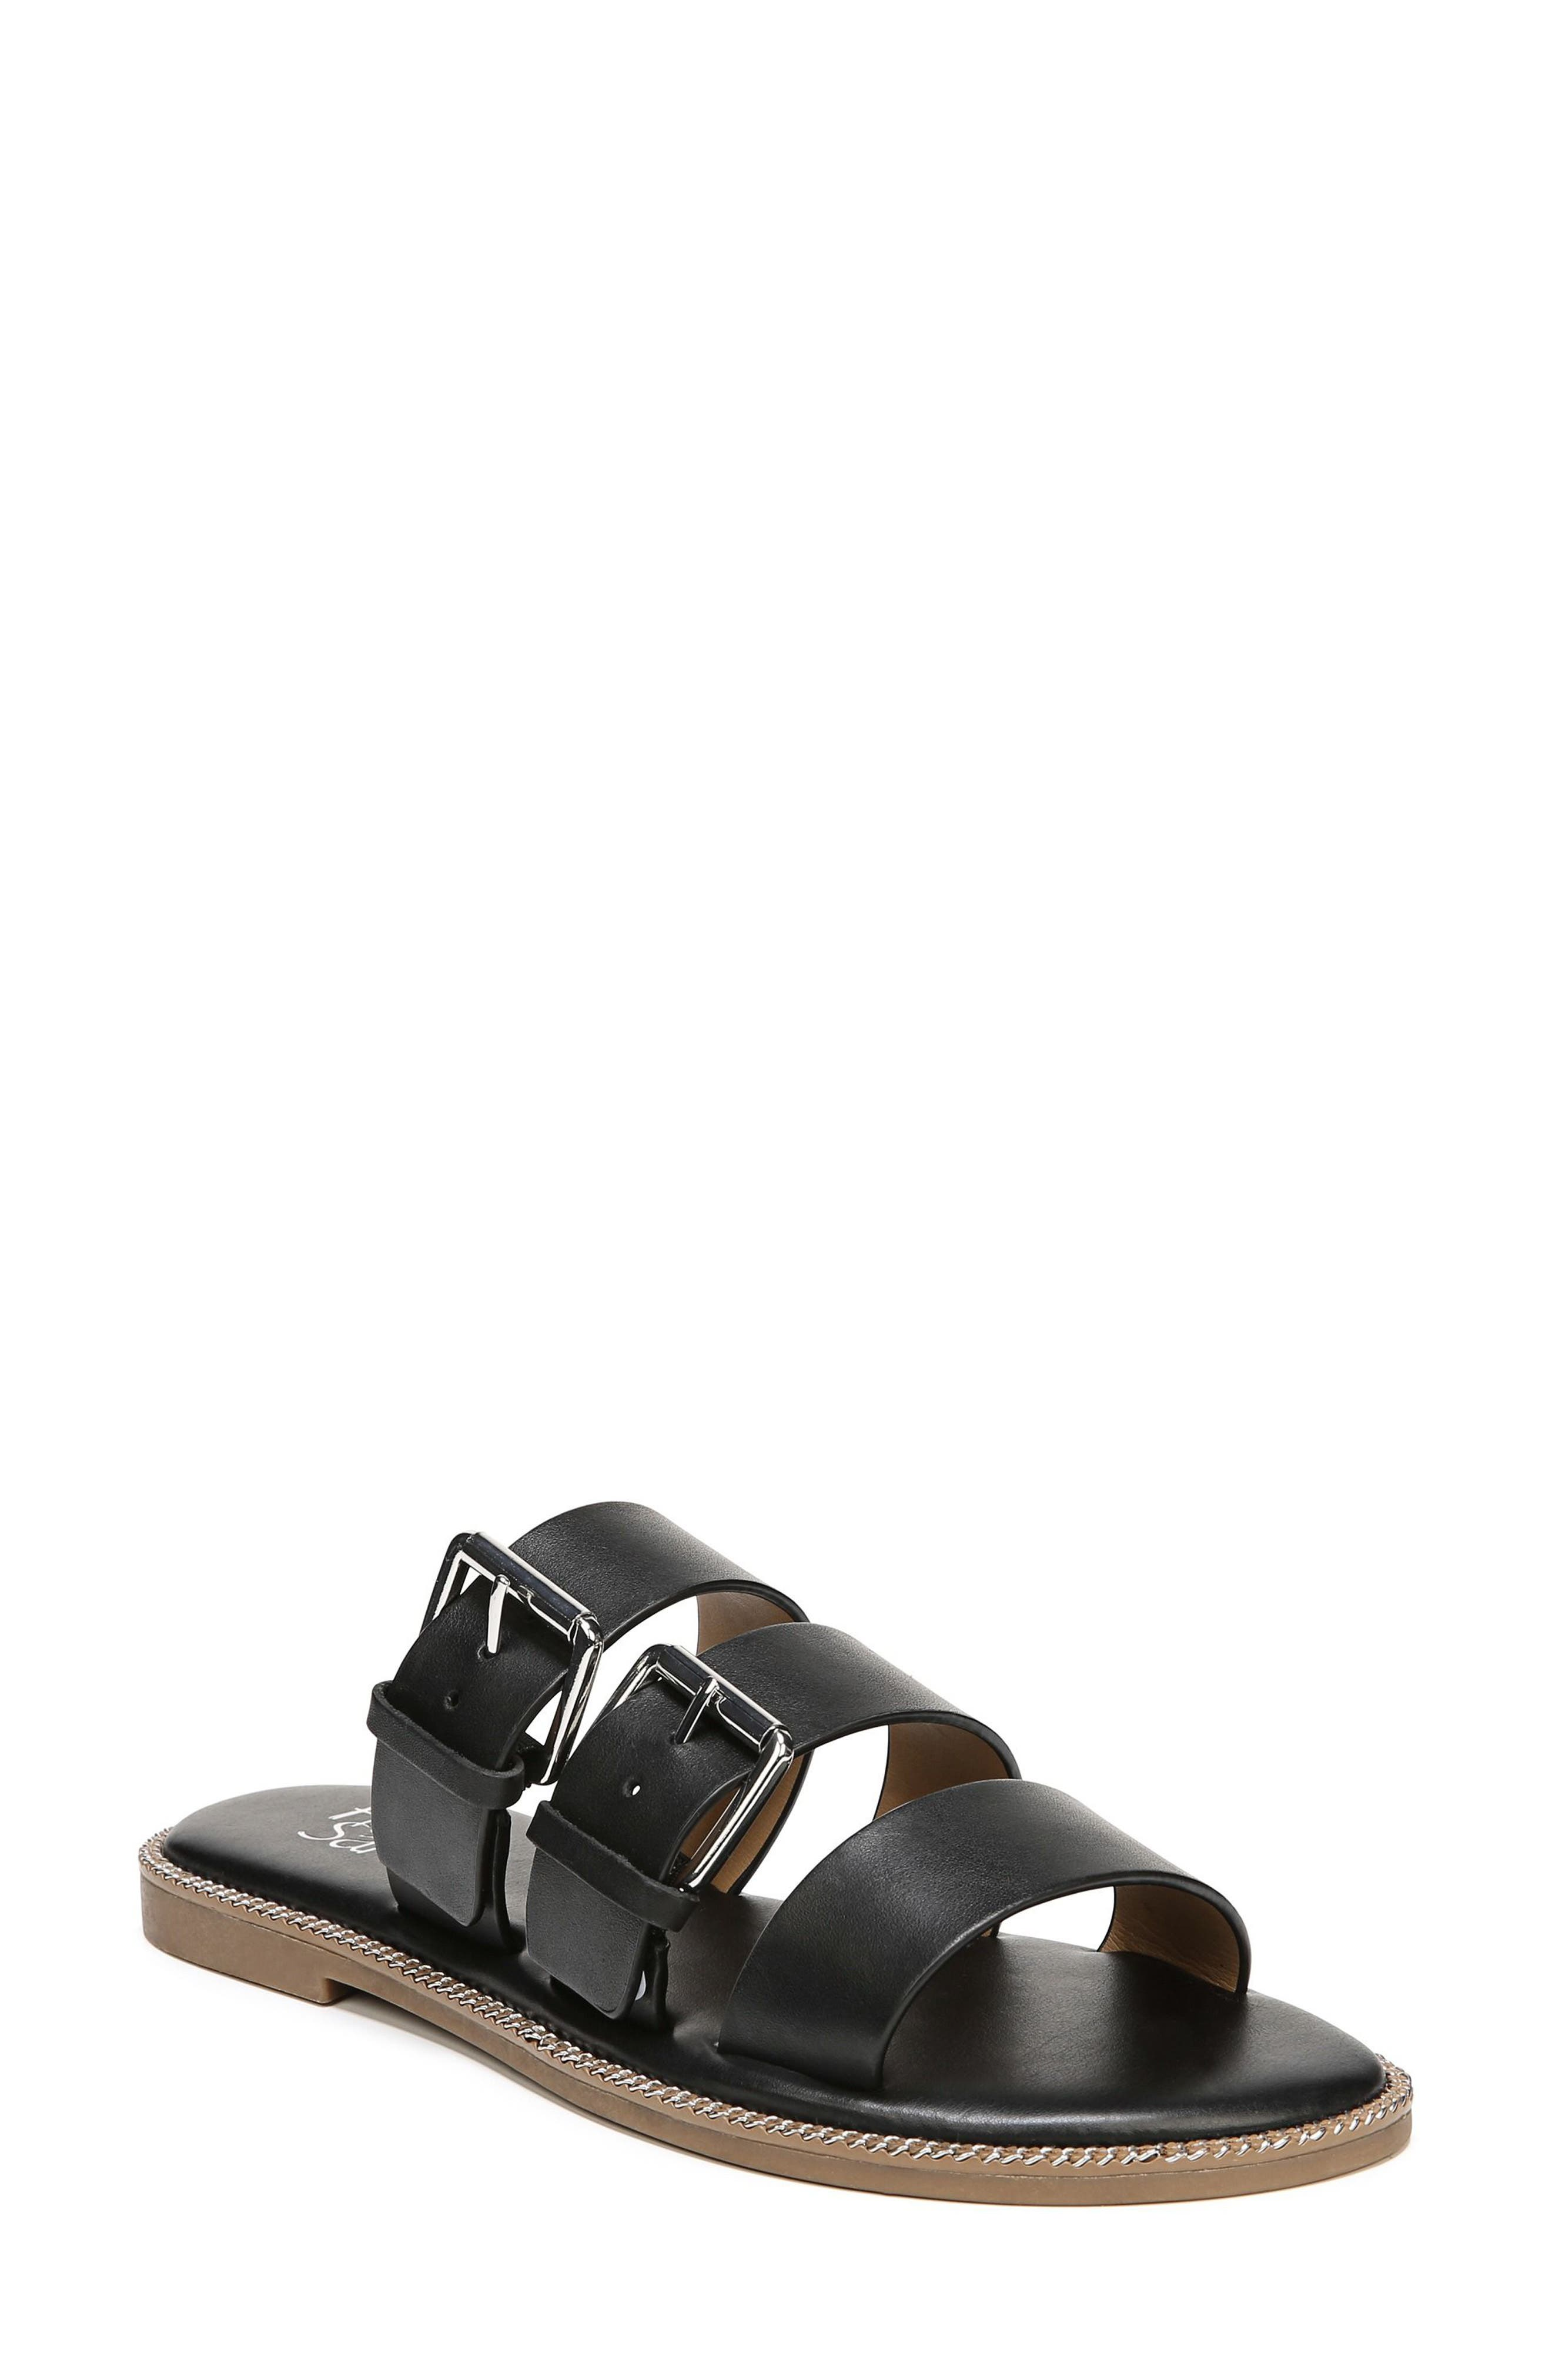 SARTO by Franco Sarto Kasa Three Strap Slide Sandal,                             Alternate thumbnail 8, color,                             BLACK LEATHER